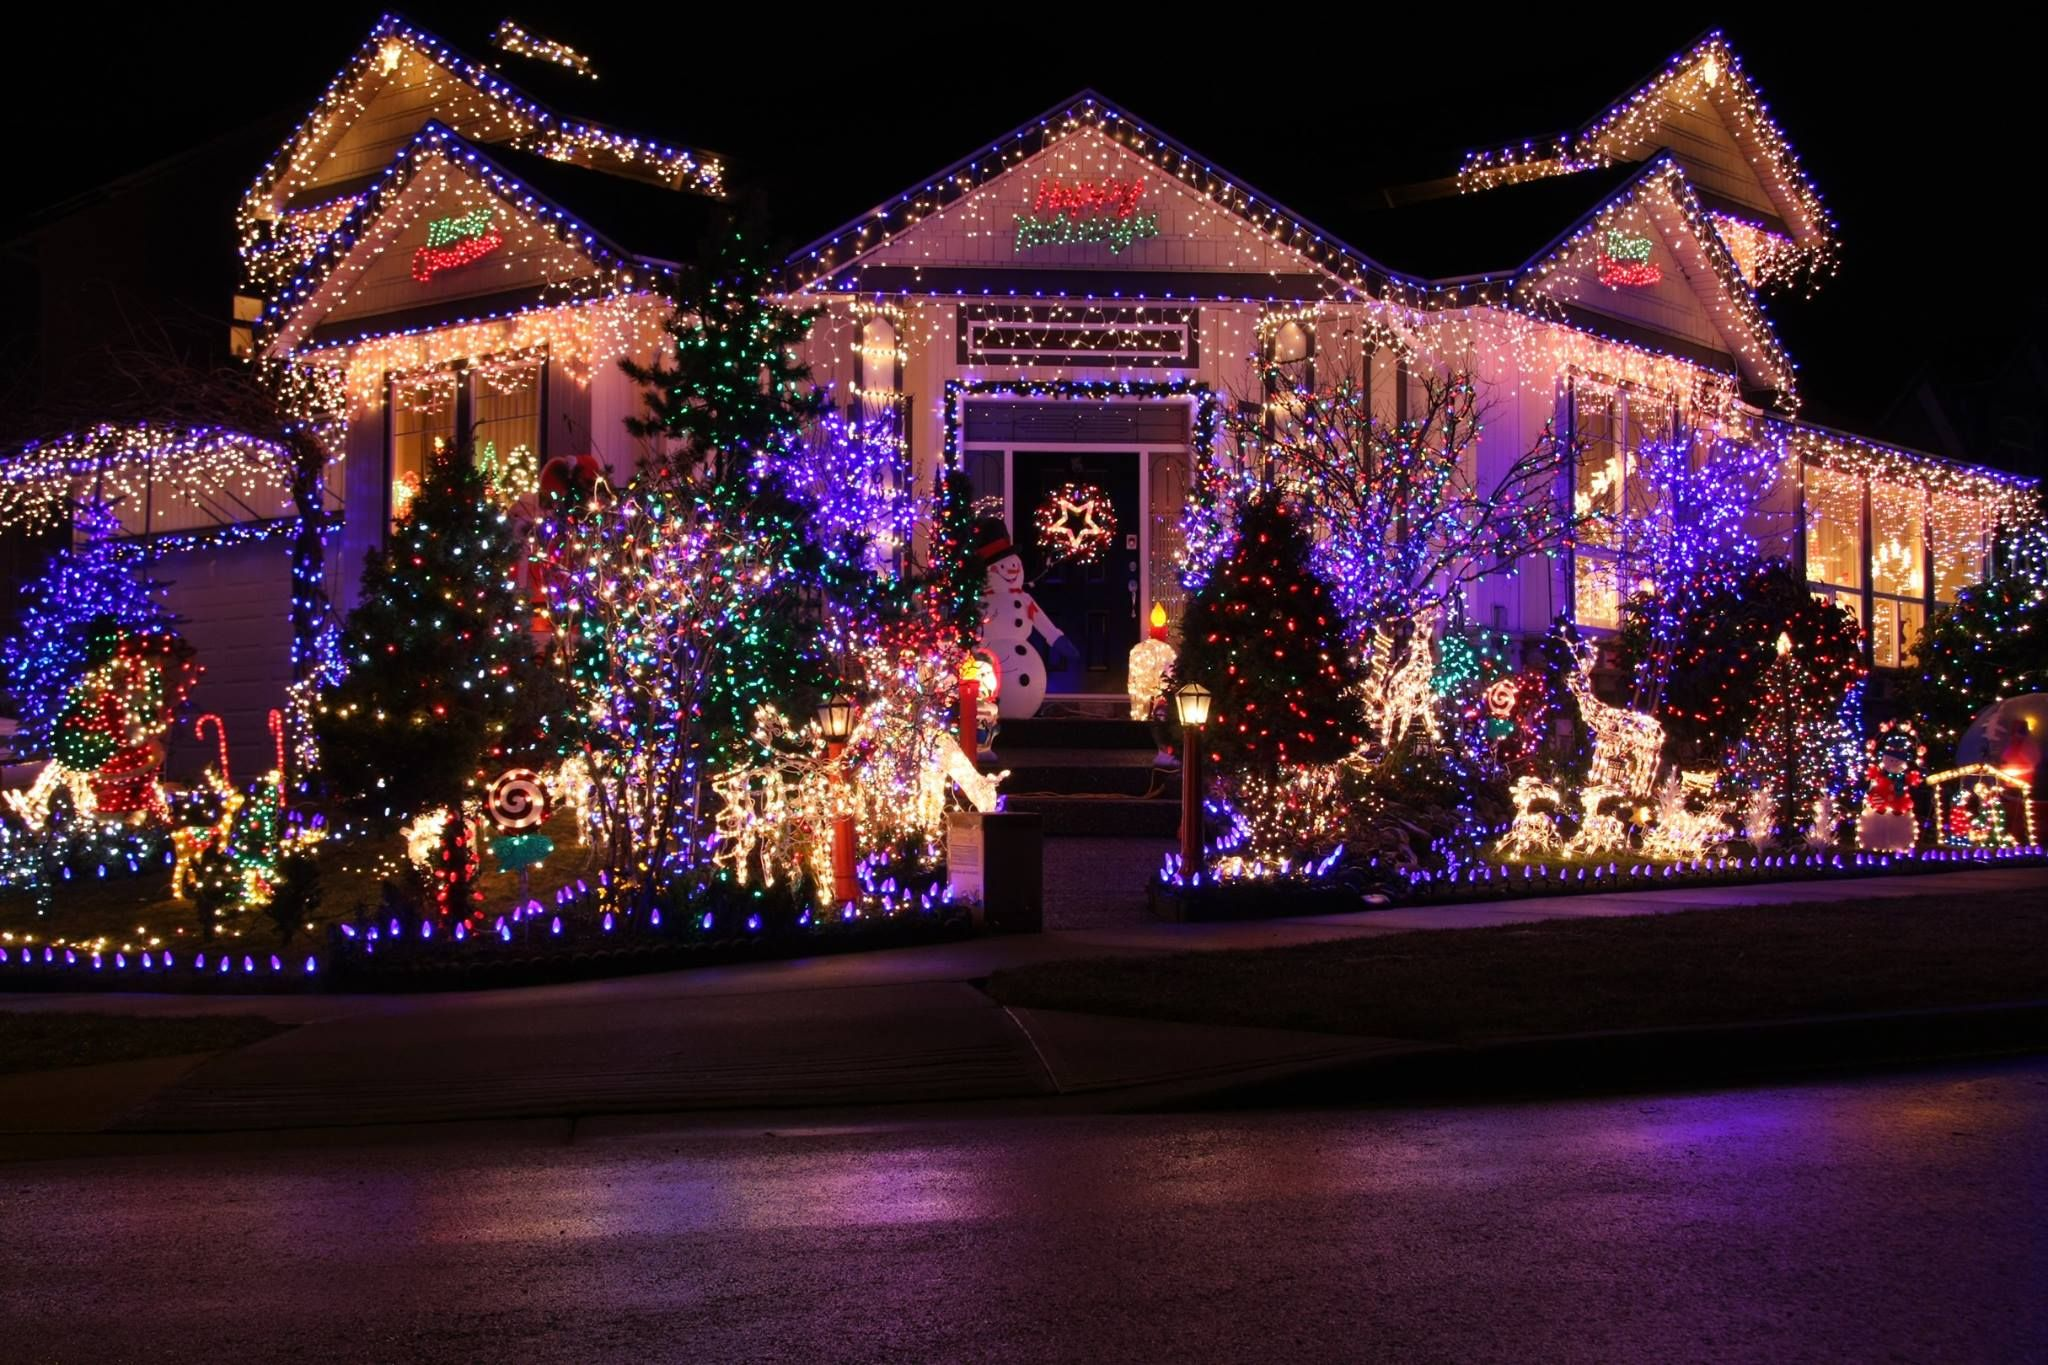 Pin by Tricia Farley on Christmas Decor Best christmas